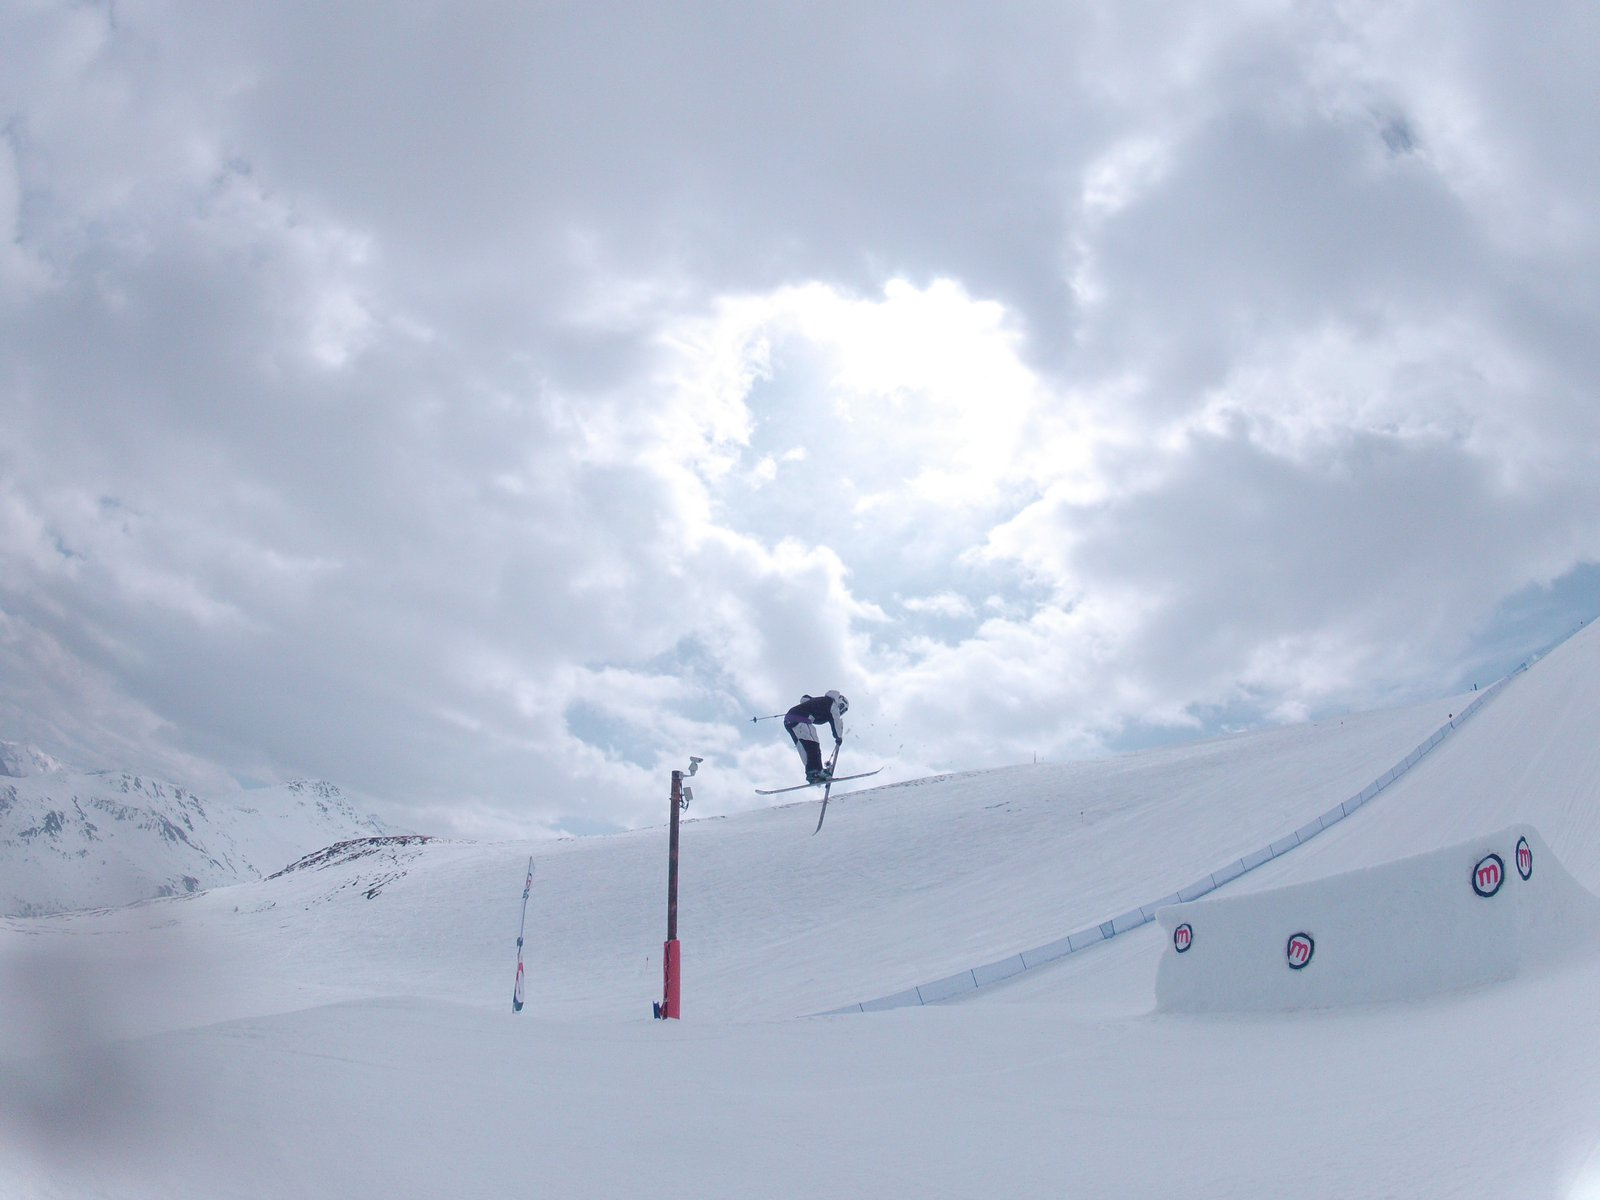 Another Telemark nose grab